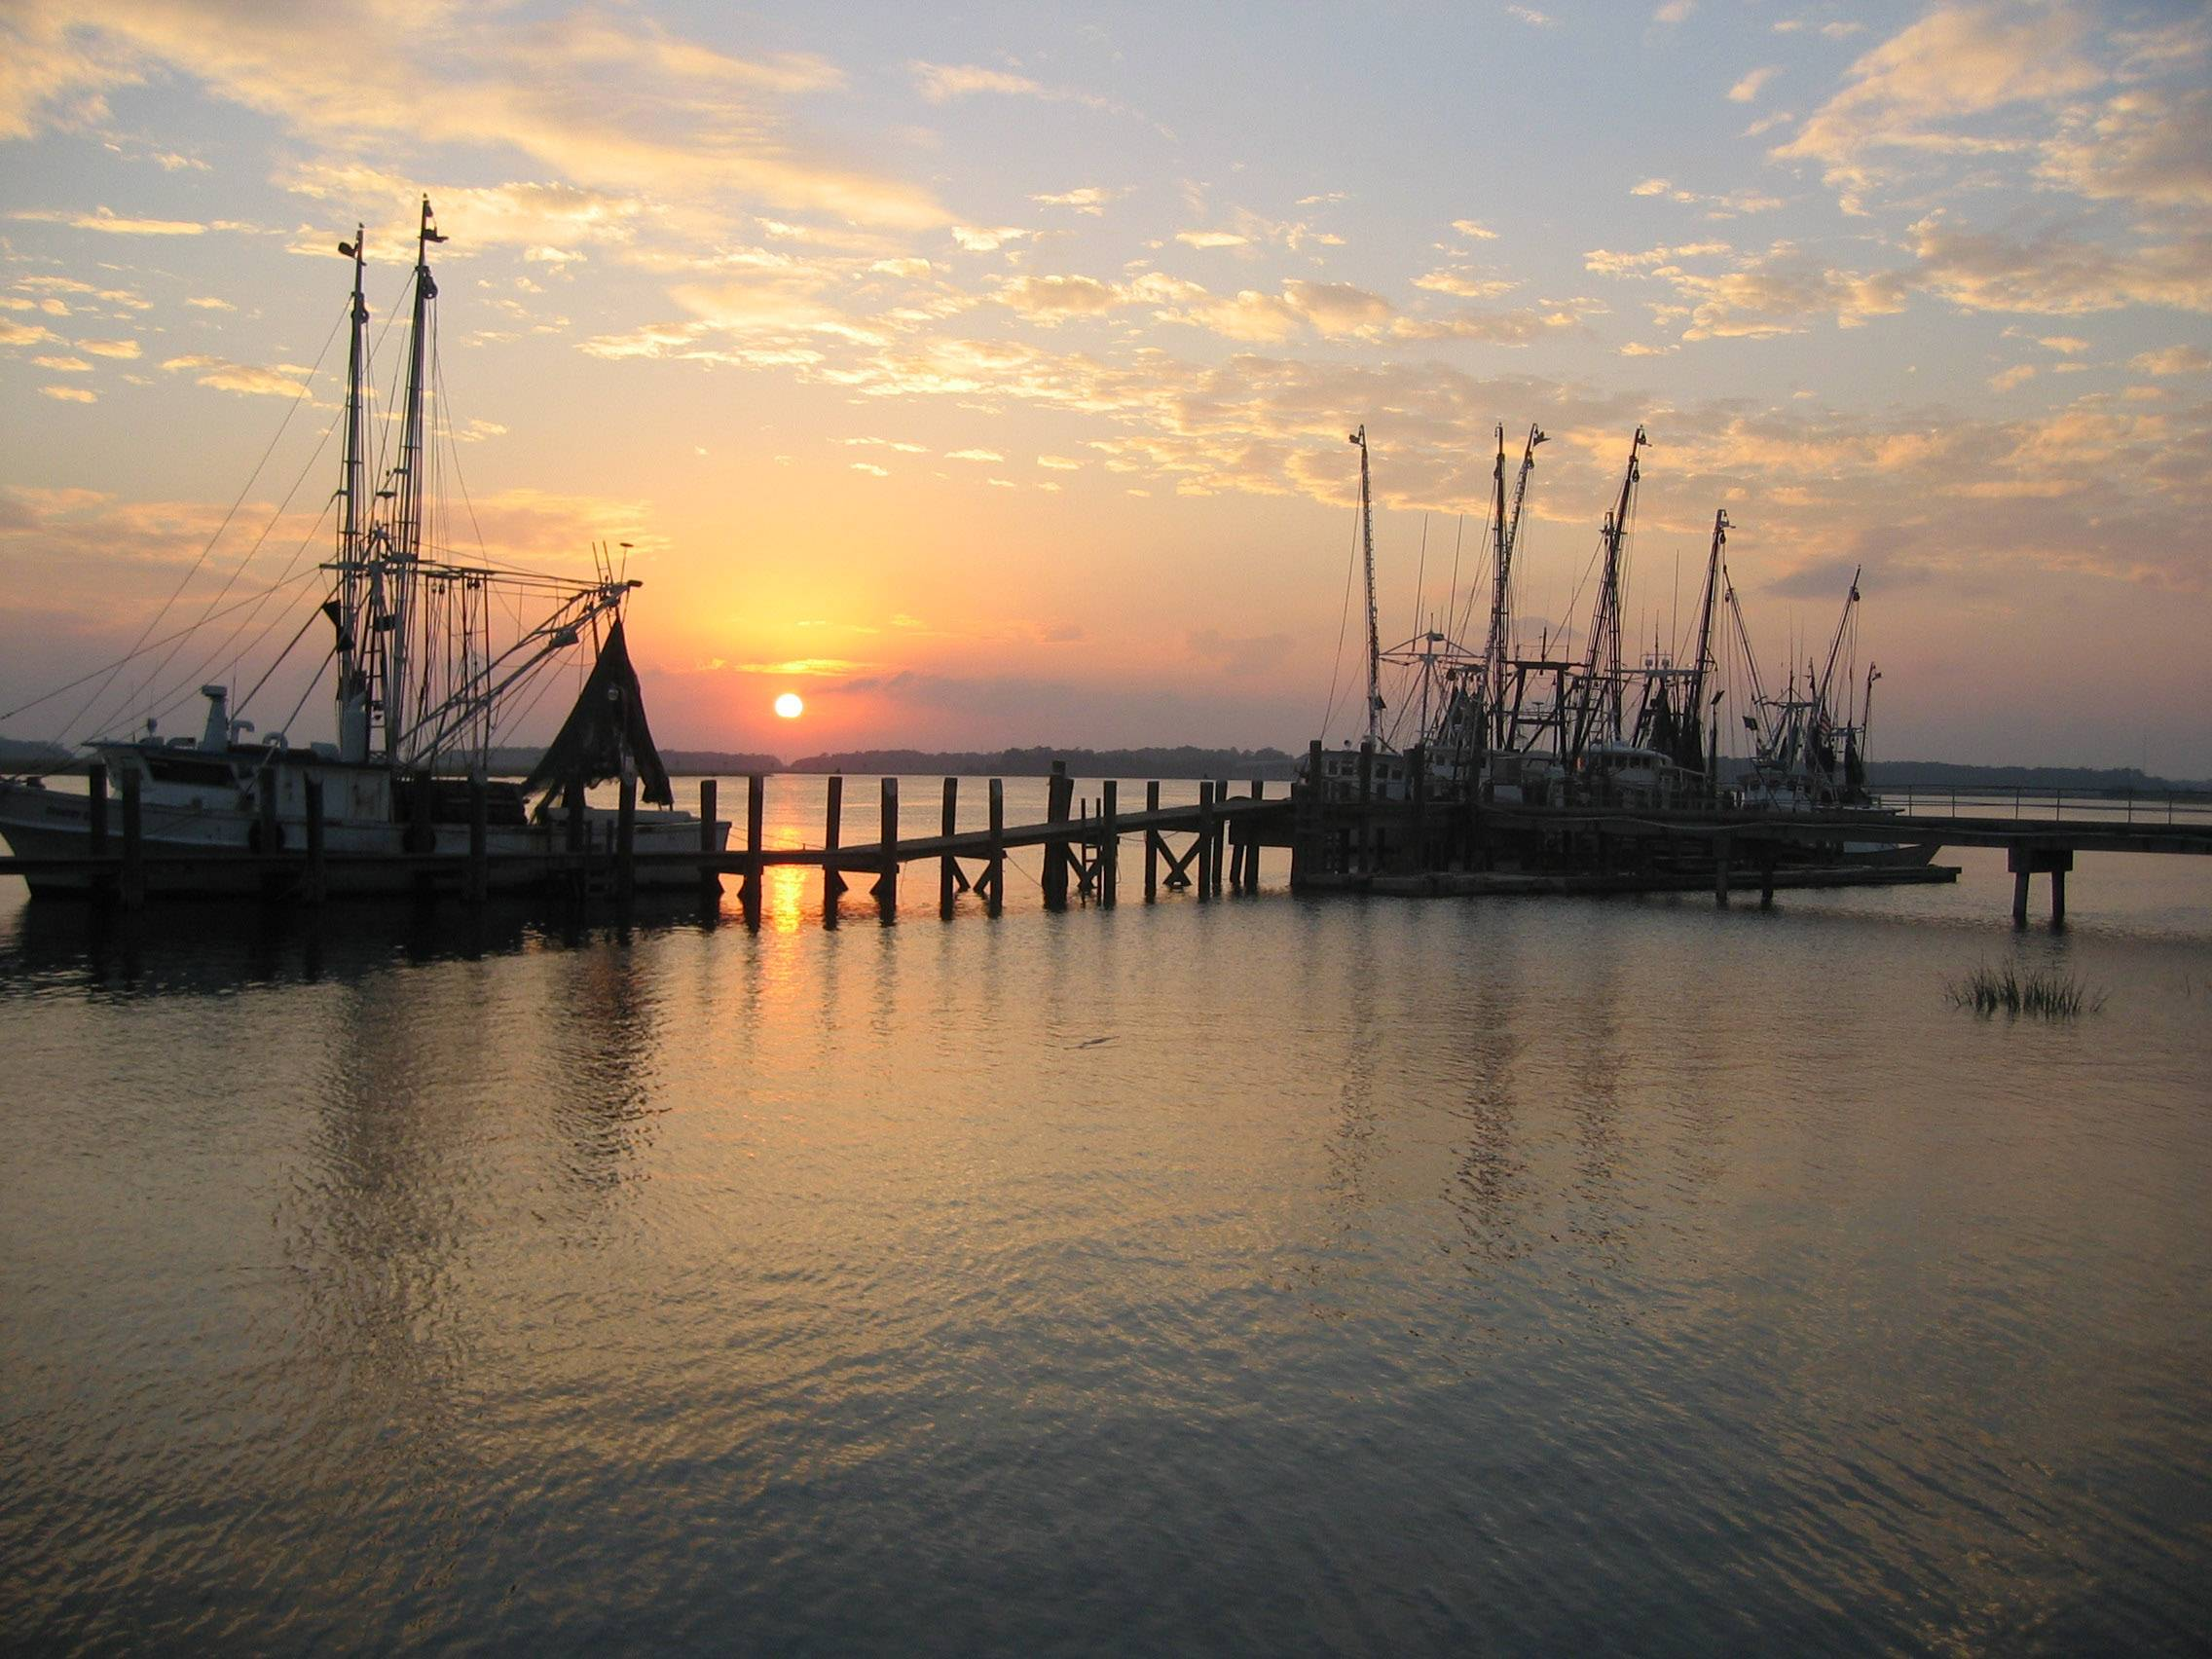 The sun sets around shrimp boats near Beaufort, South Carolina in July 2014